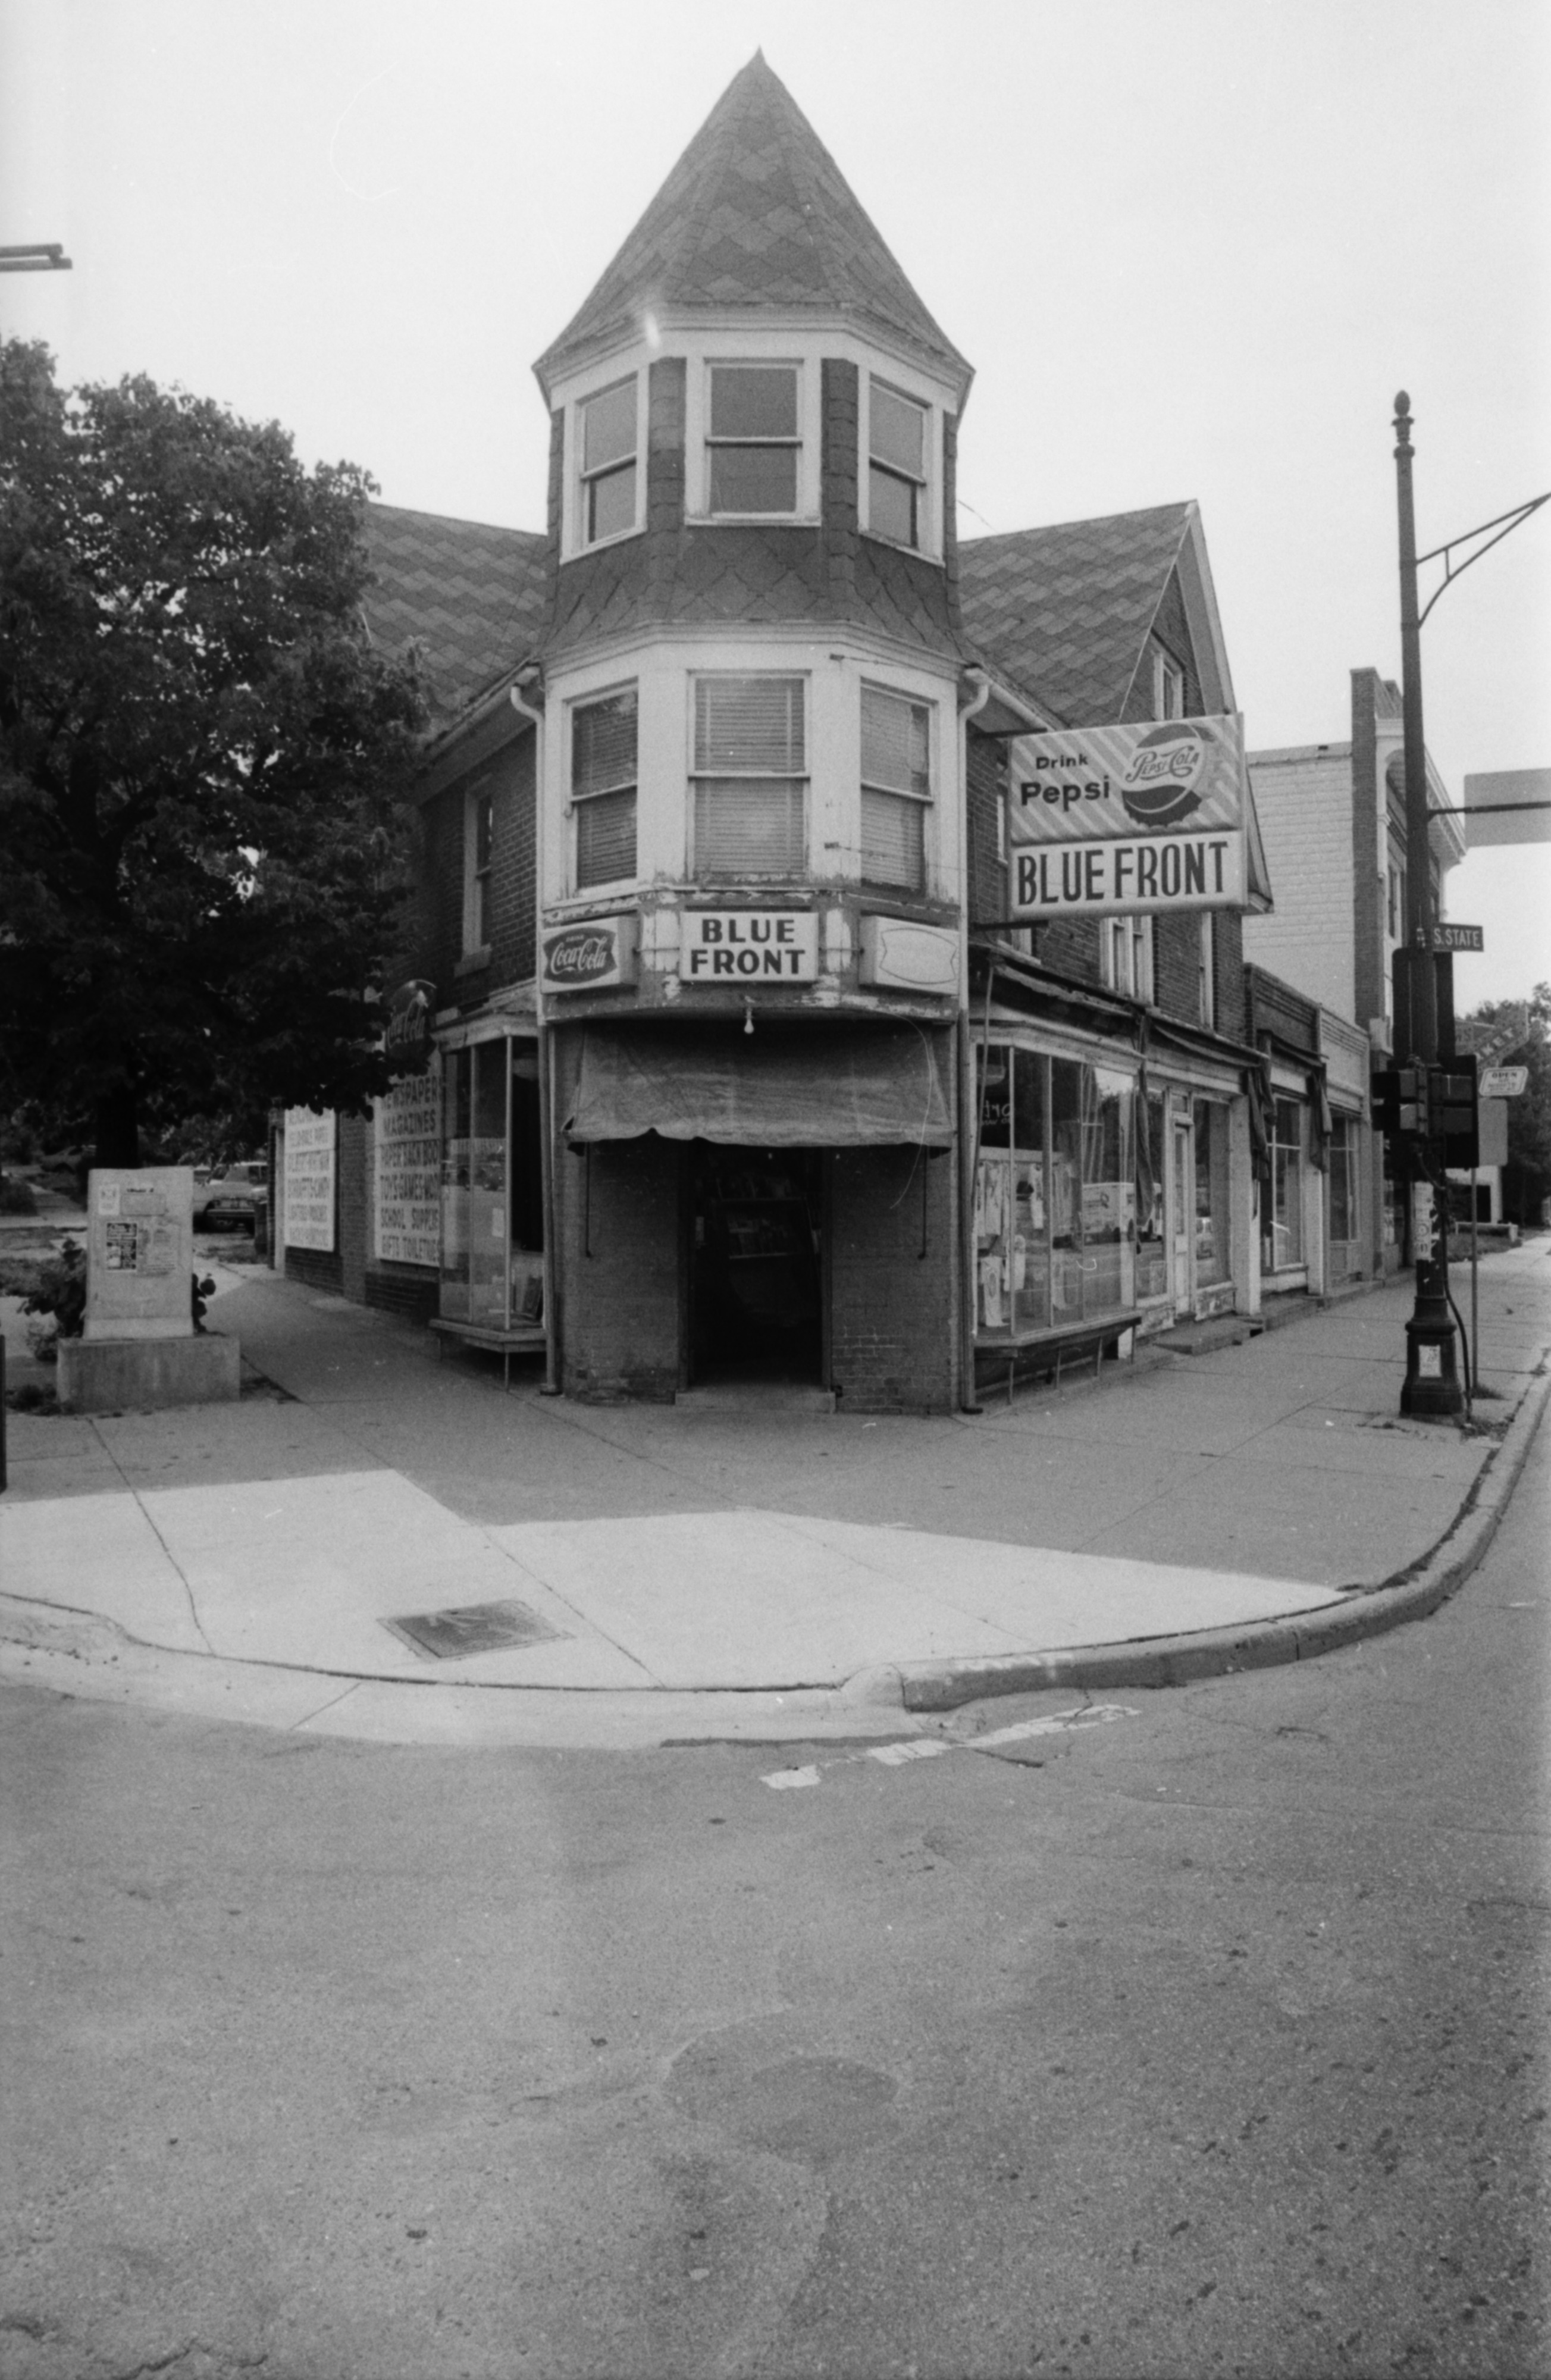 Exterior of Blue Front Cigar Store, 701 Packard, August 15, 1980 image